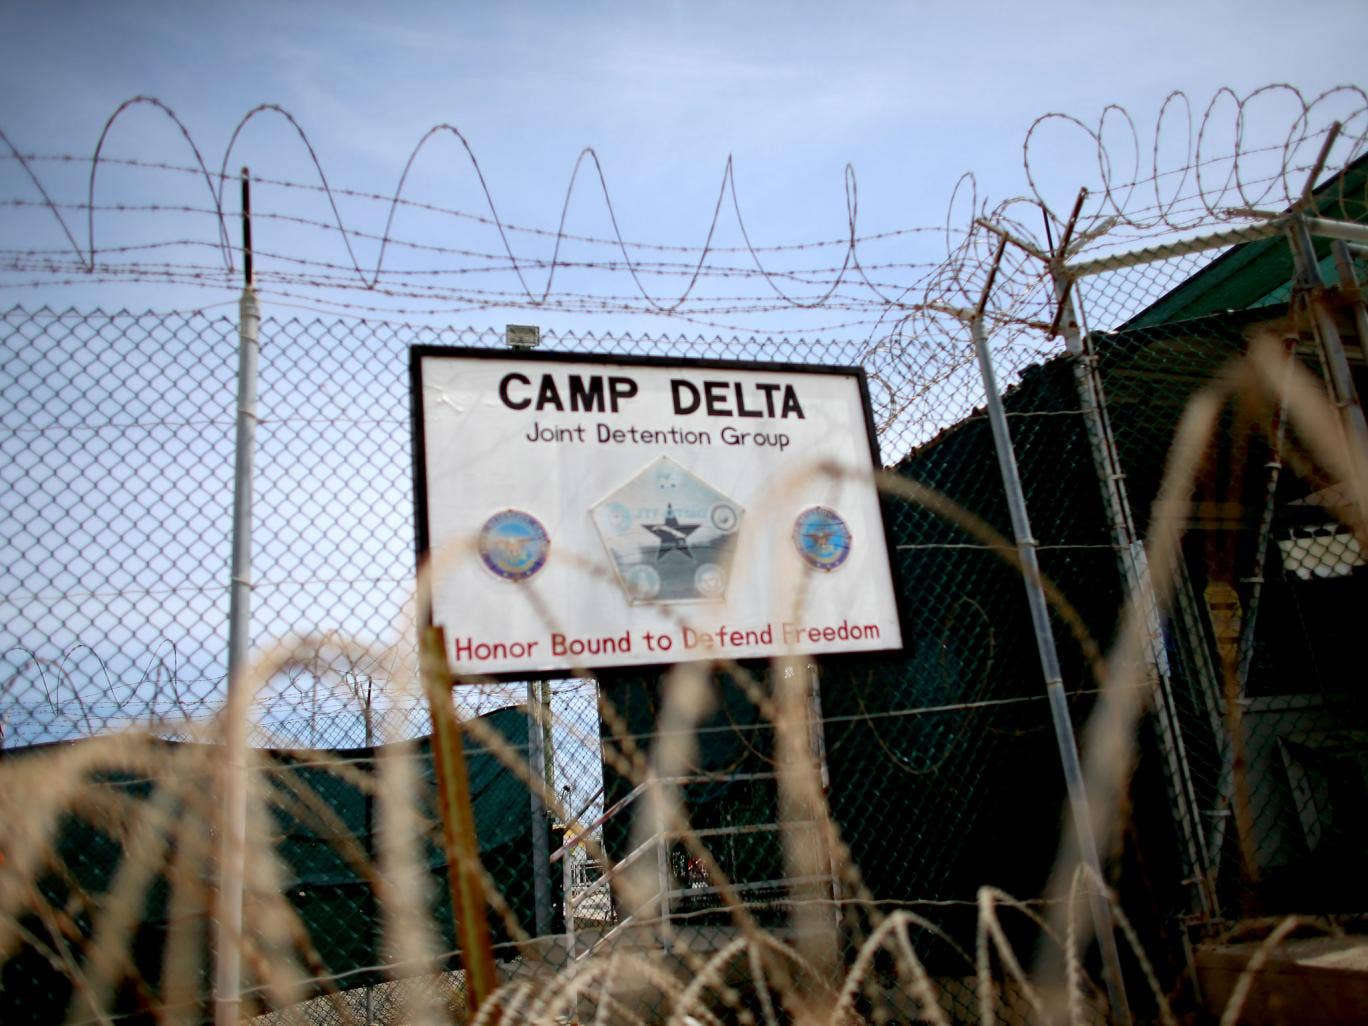 Camp Delta which is part of the U.S. military prison for 'enemy combatants' in Guantanamo Bay - Sir Peter Gibson's investigation looked into whether the Government should have done more to obtain the release of UK nationals locked up at the Guantanamo Bay